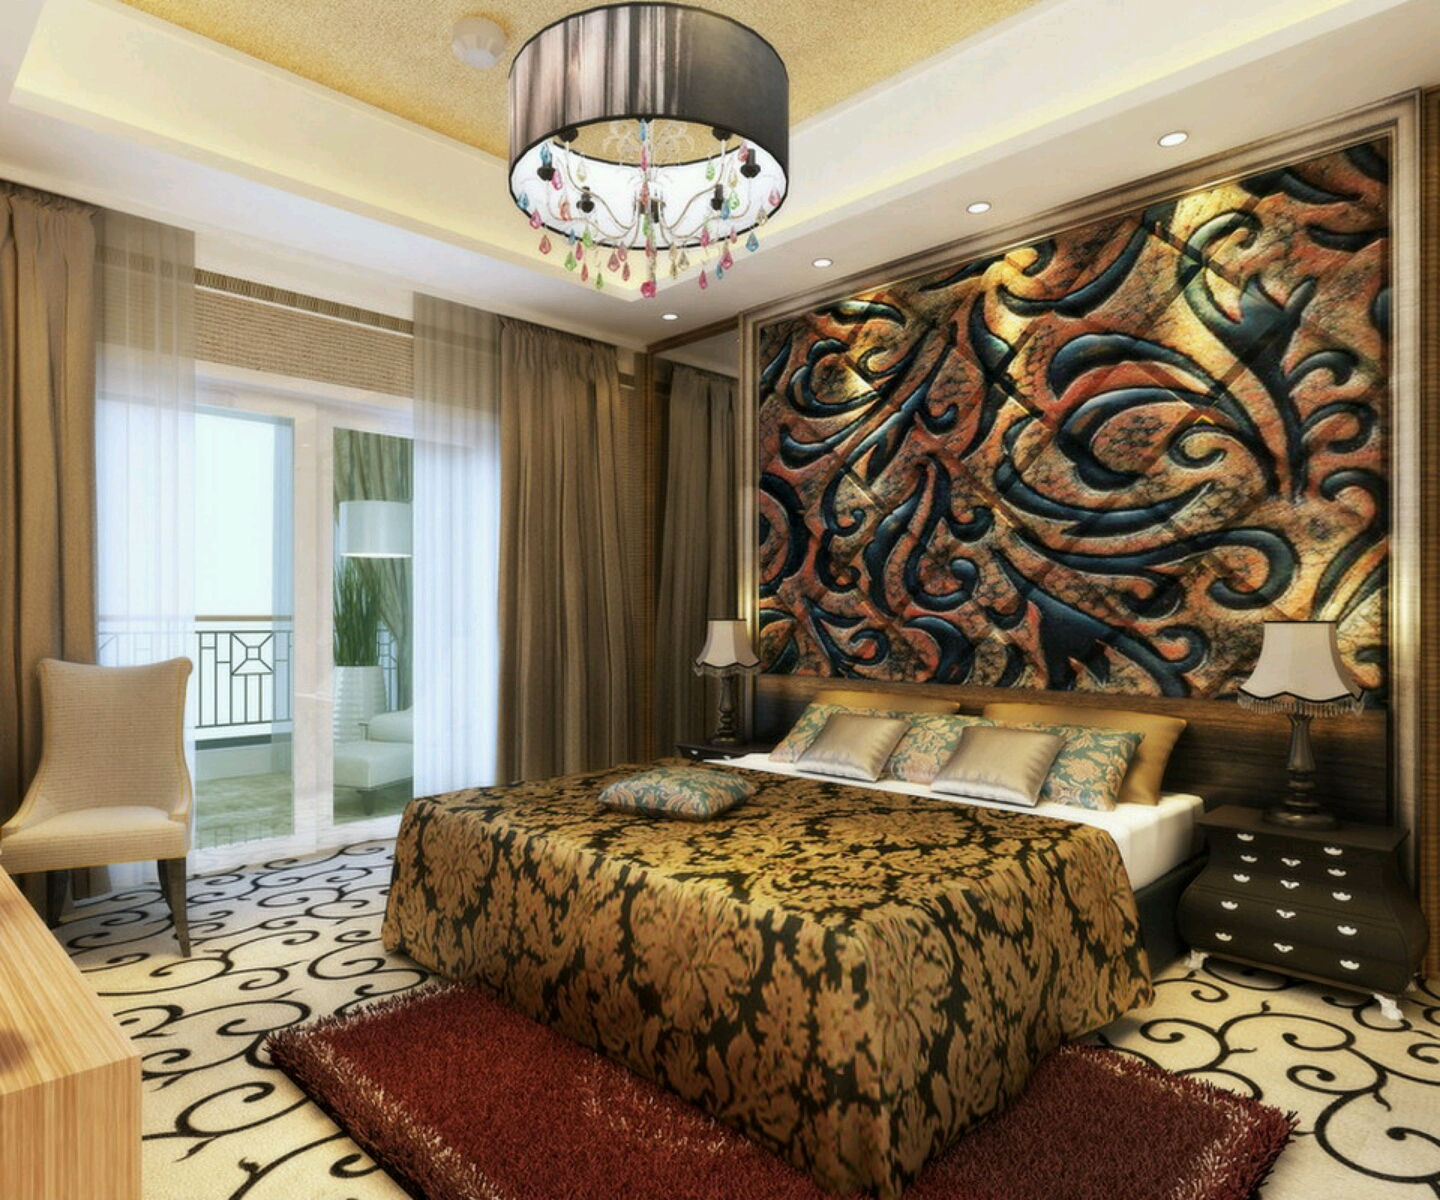 Modern beautiful bedrooms interior decoration designs Beautiful home interior designs